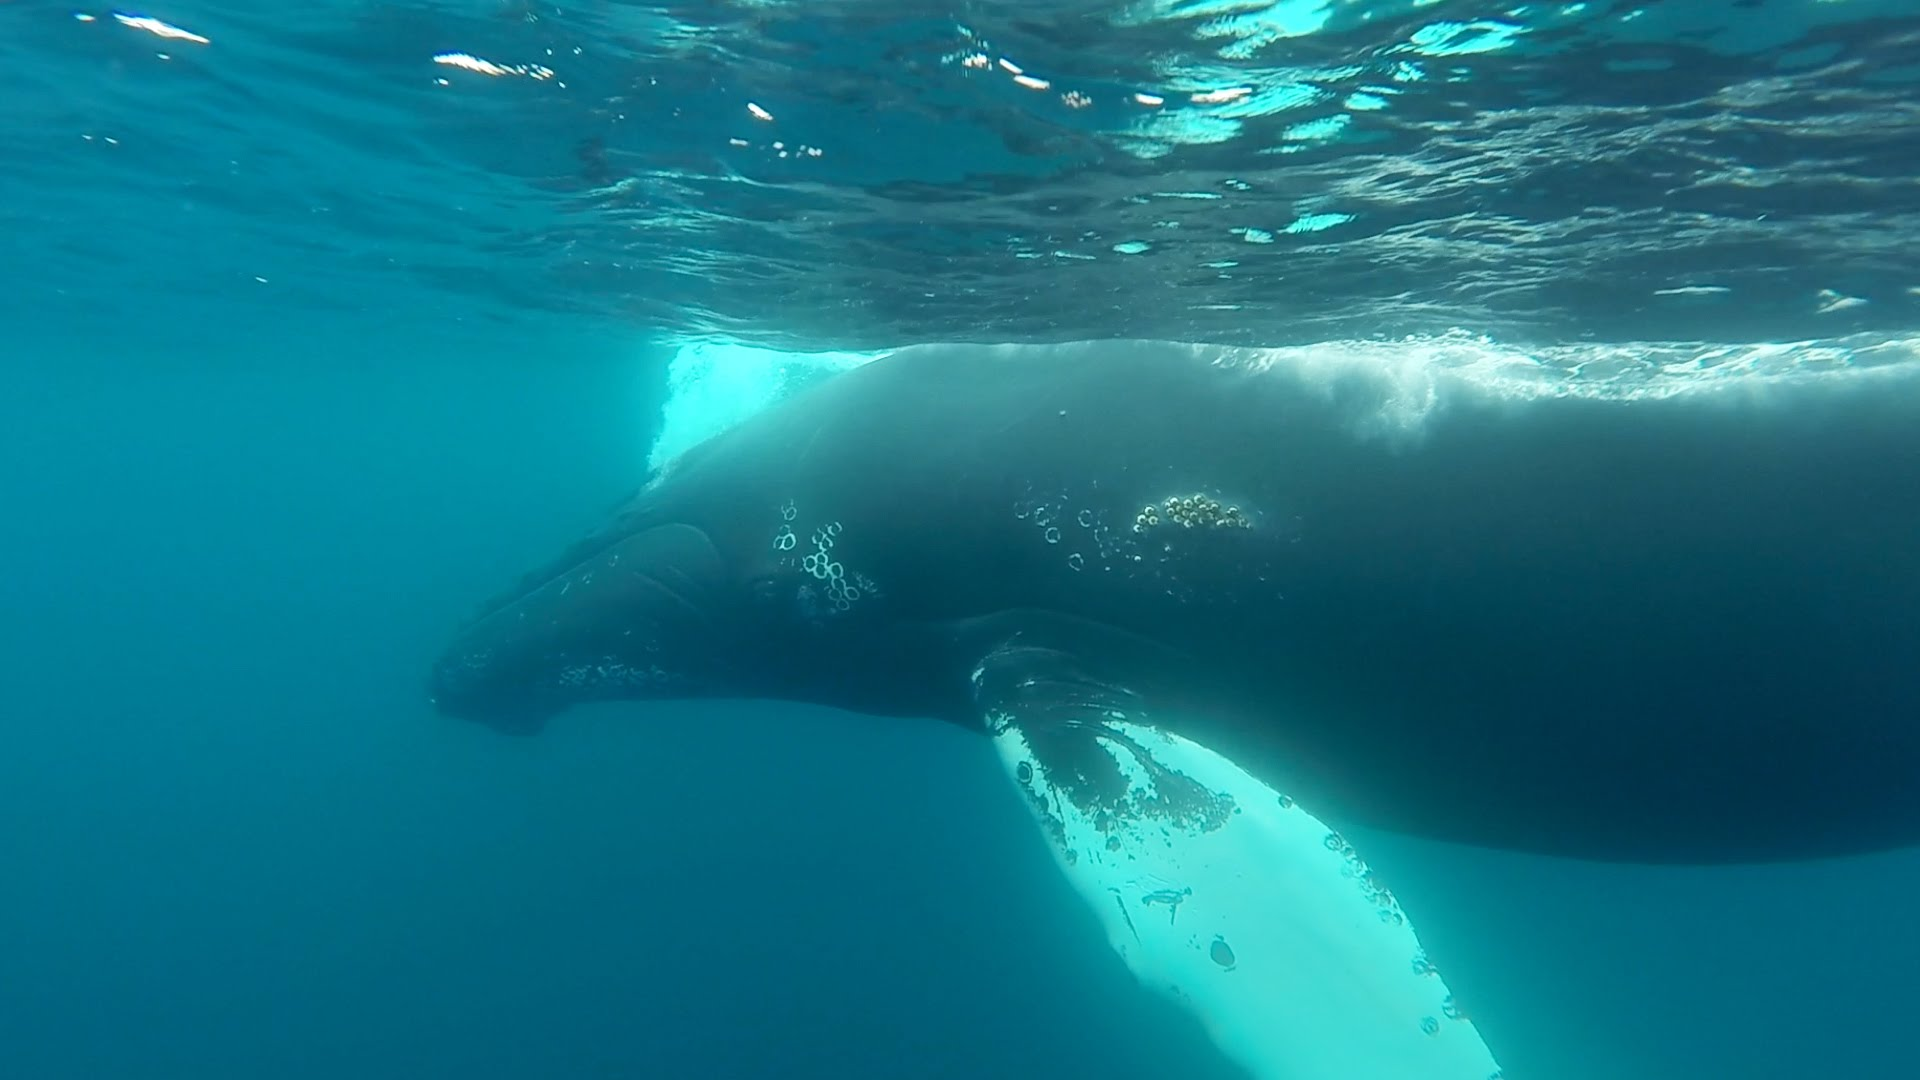 Snorkeling With Humpback Whales by Go Pro